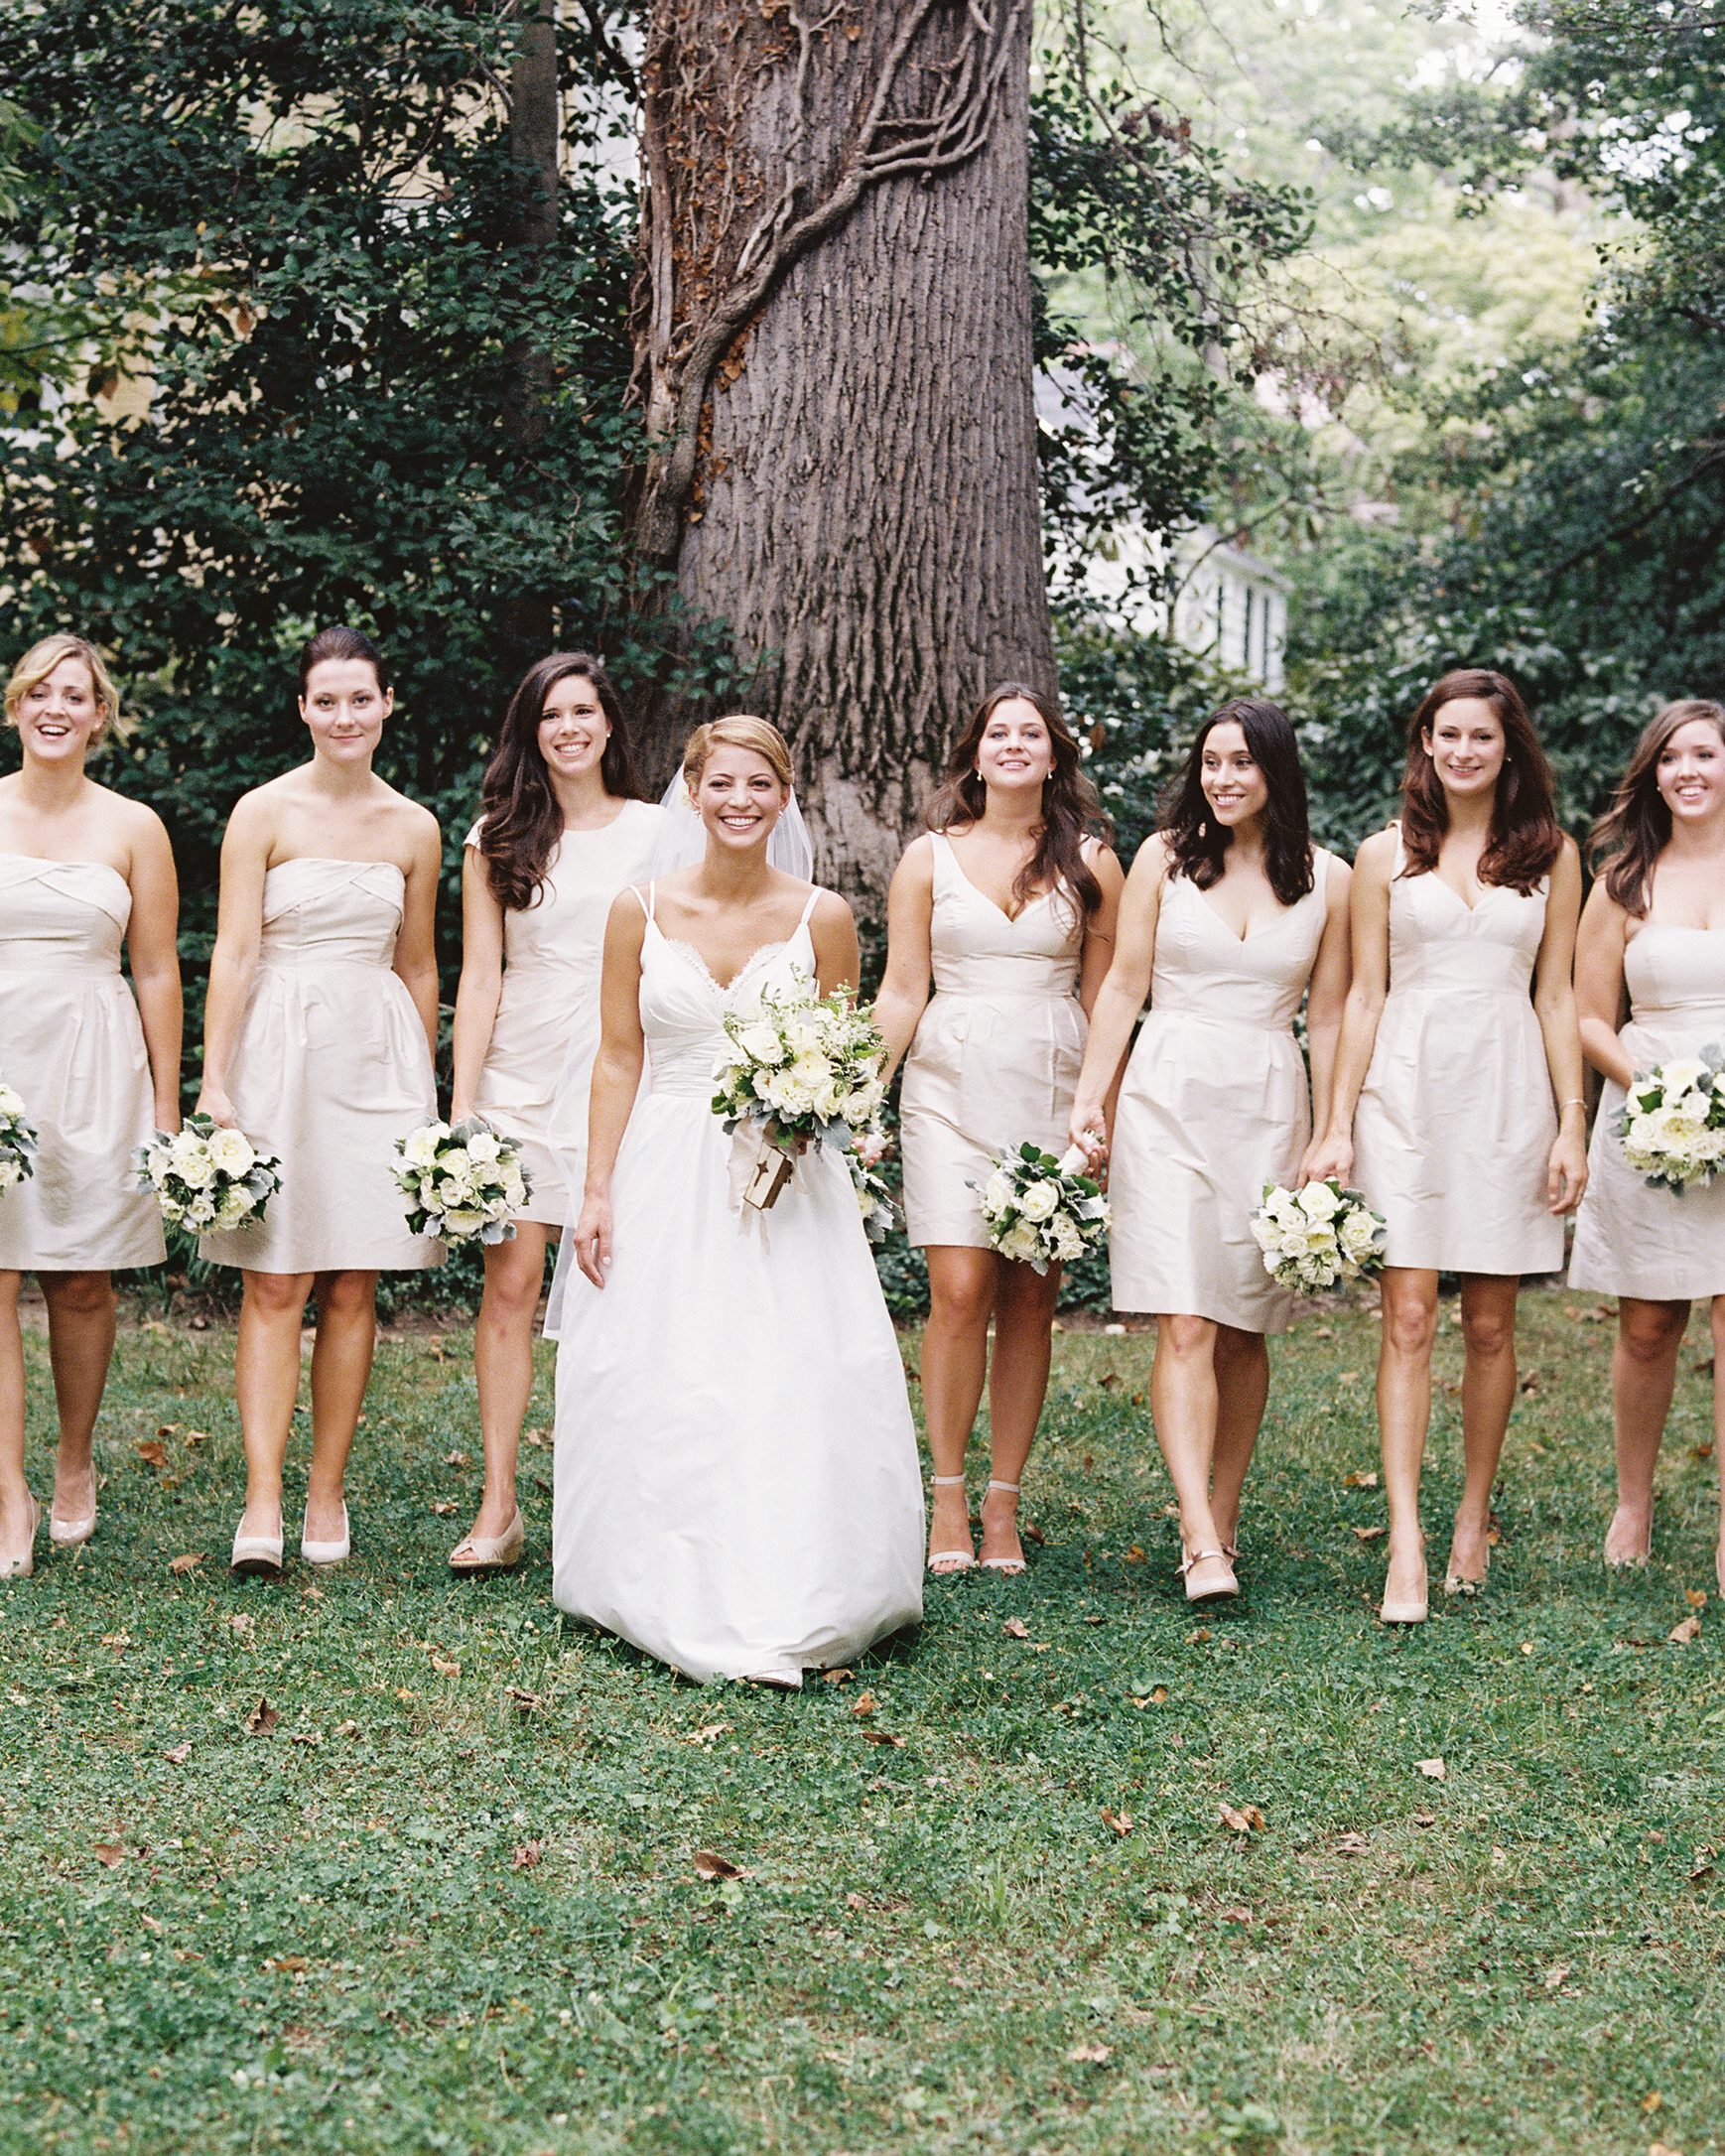 beth-scott-wedding-bridesmaids-0377-s112077-0715.jpg